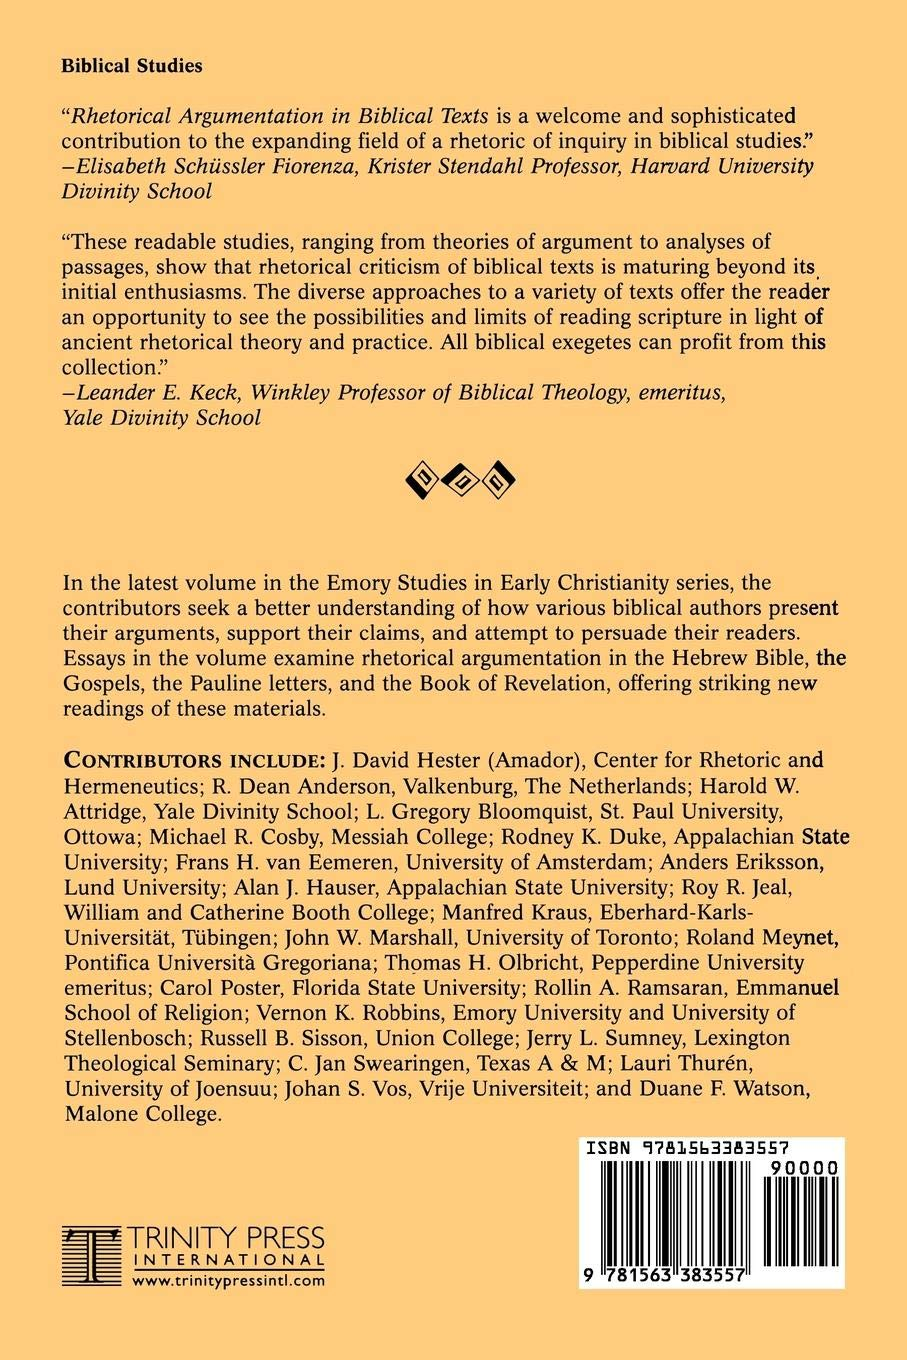 Rhetorical Argumentation In Biblical Texts Essays From The Lund  Rhetorical Argumentation In Biblical Texts Essays From The Lund   Conference Emory Studies In Early Christianity Anders Eriksson Thomas  H Olbricht